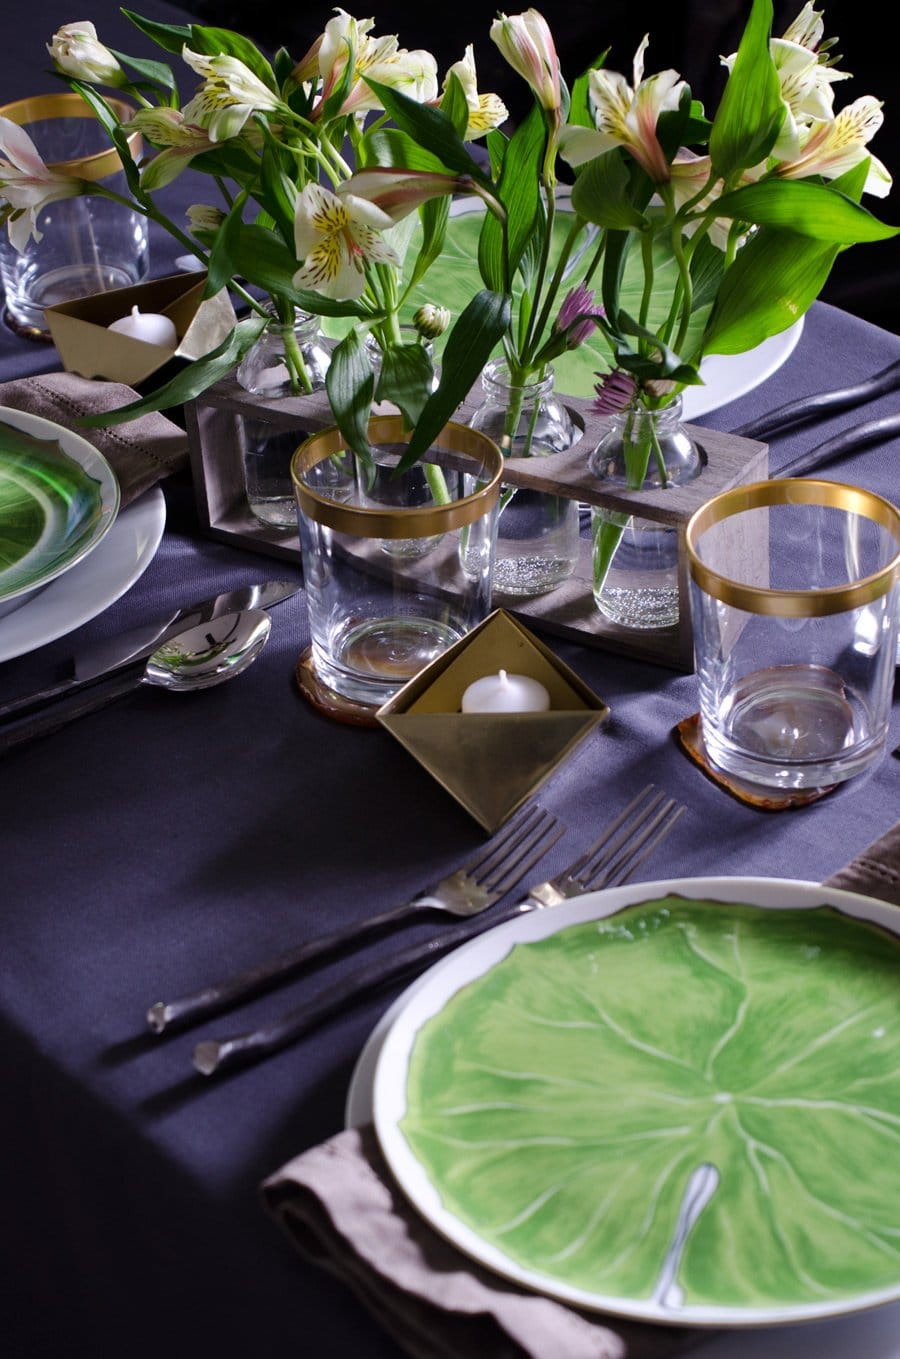 MODERN & ROMANTIC VALENTINE'S DAY TABLE   Thou Swell https://thouswell.com/modern-romantic-valentines-day-table